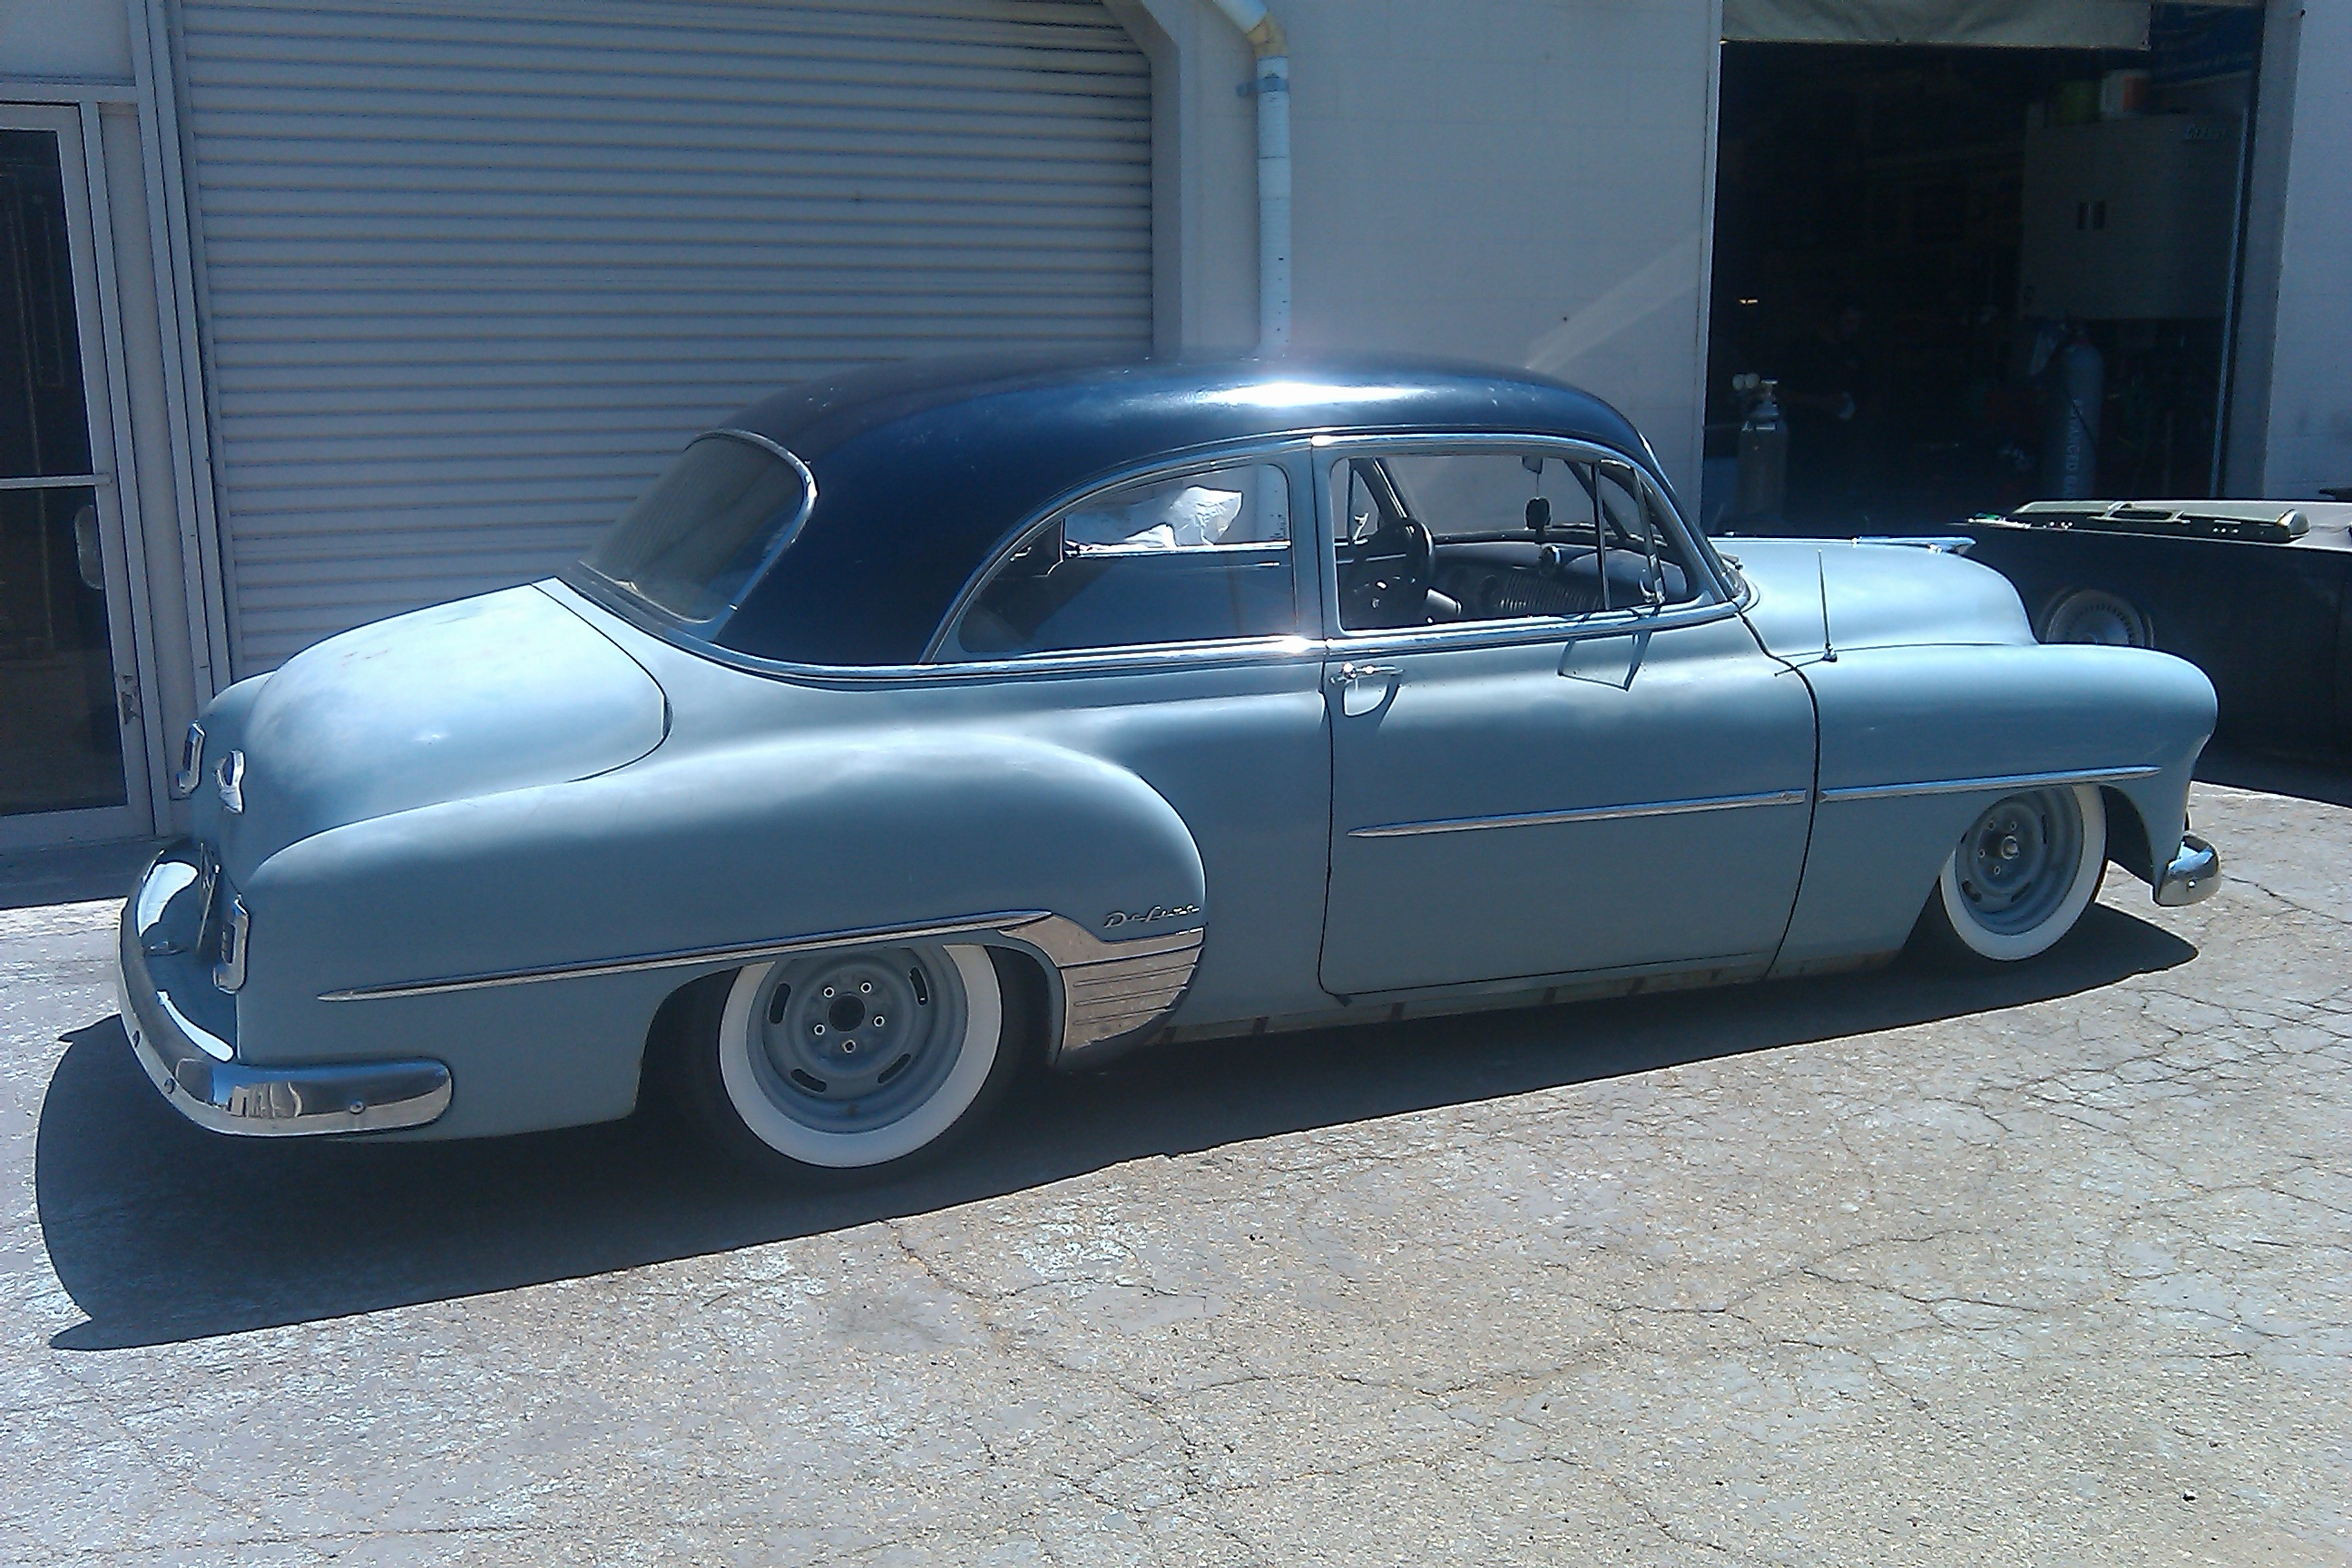 1951 Chevy Styleline Deluxe Wiring Layout Diagrams Chevrolet Cmc Designs U00bb Repairs And Upgrade Work Interior Custom